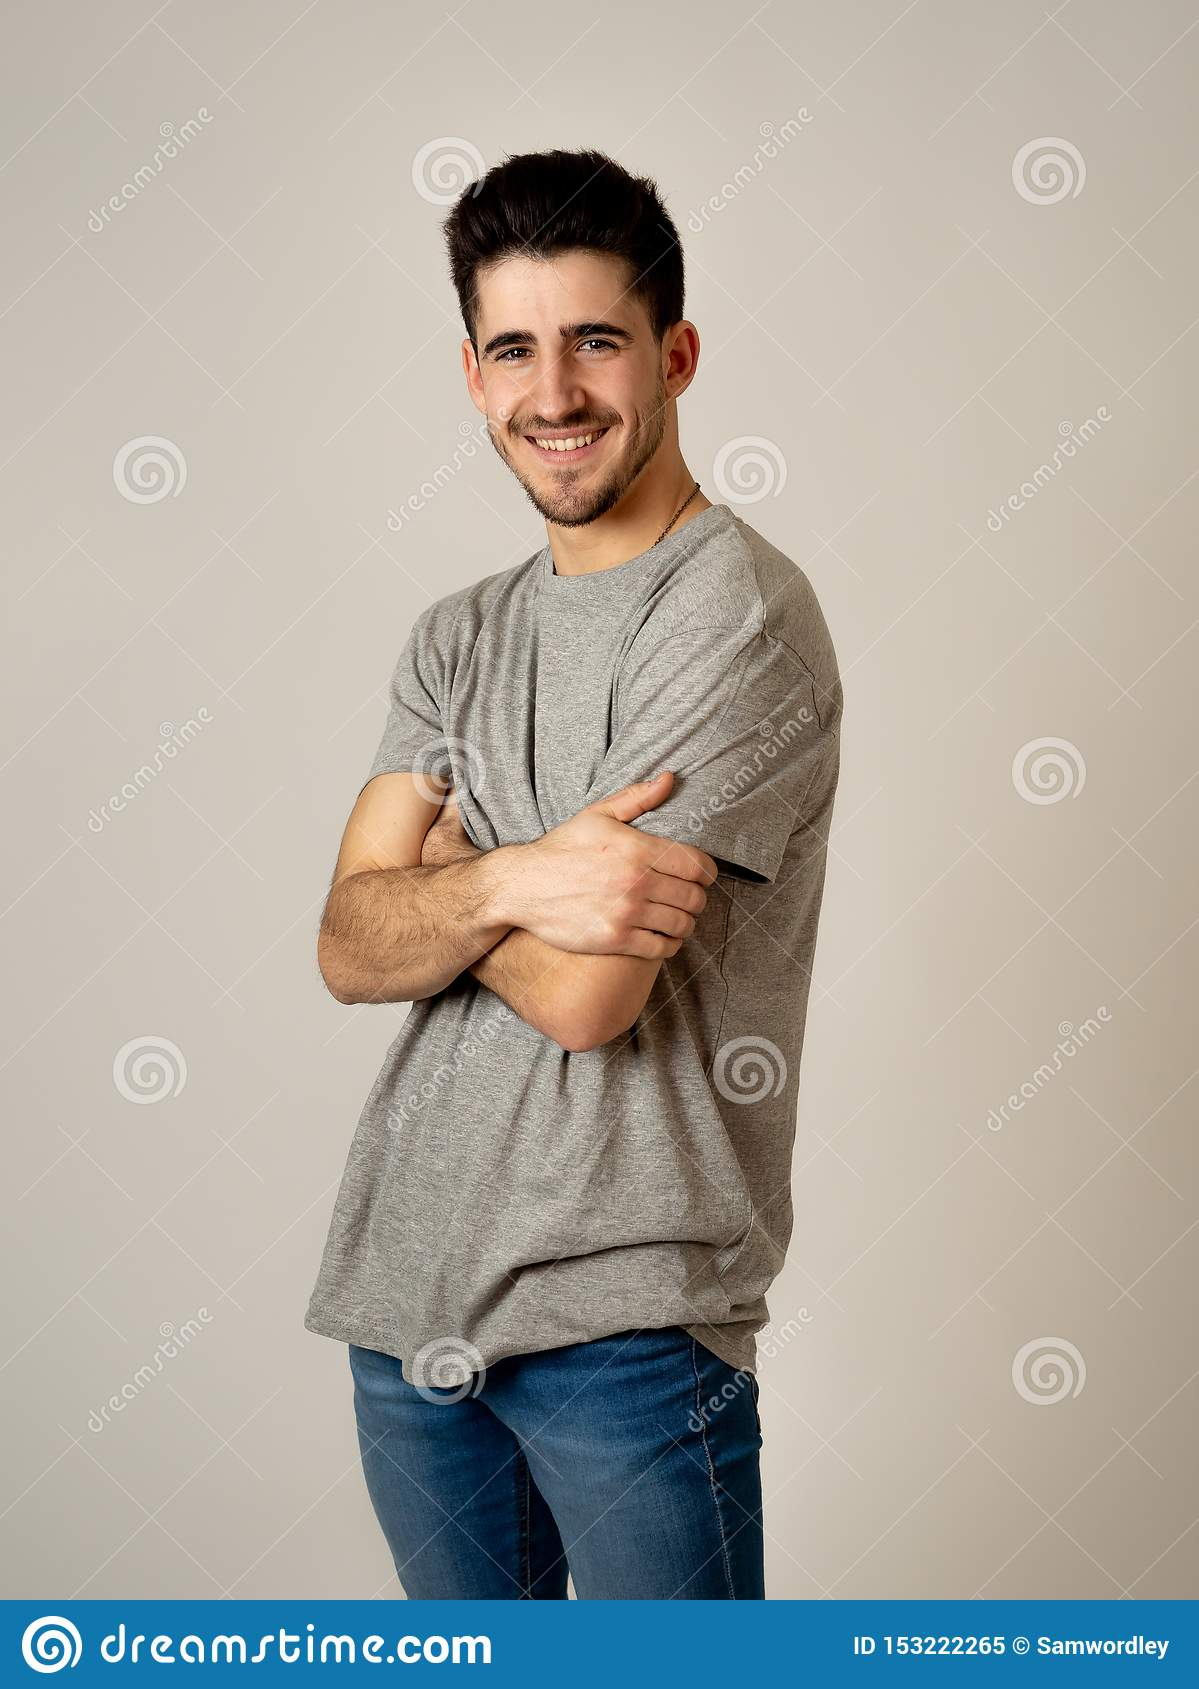 Stylish portrait of young cool man isolated on neutral background